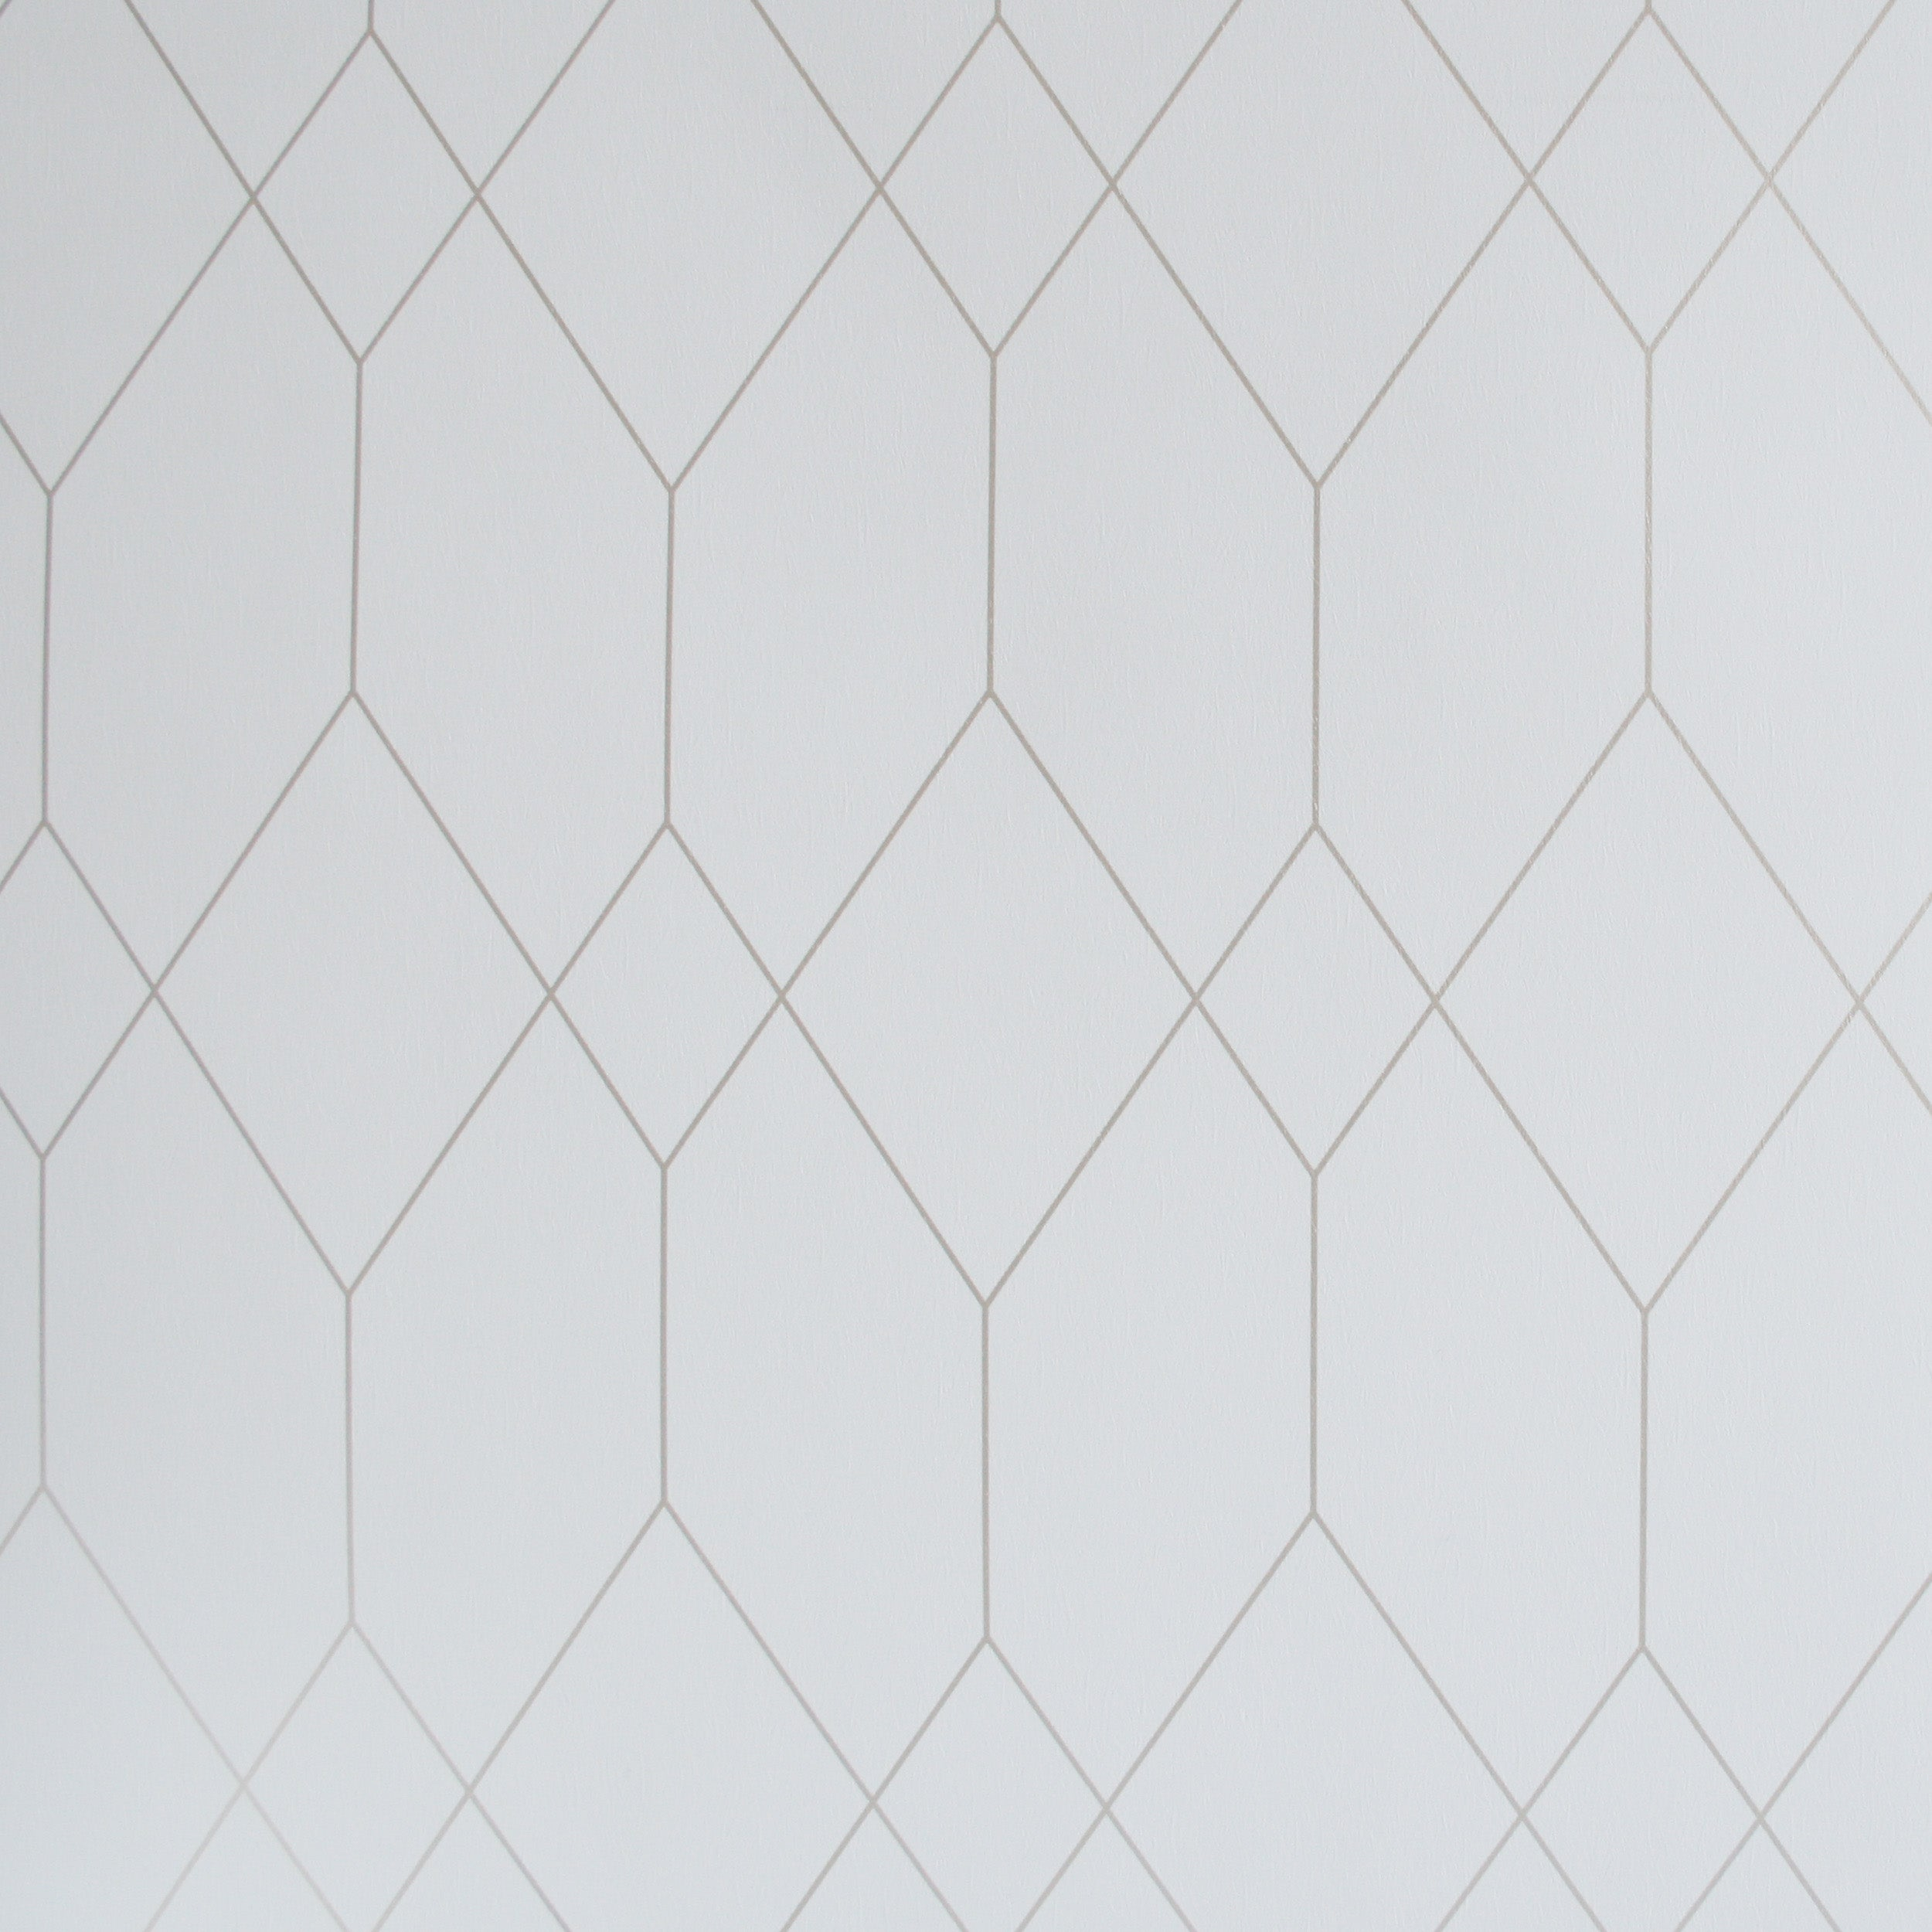 Polygon Geometric Designer Wallpaper In White Gold Your 4 Walls